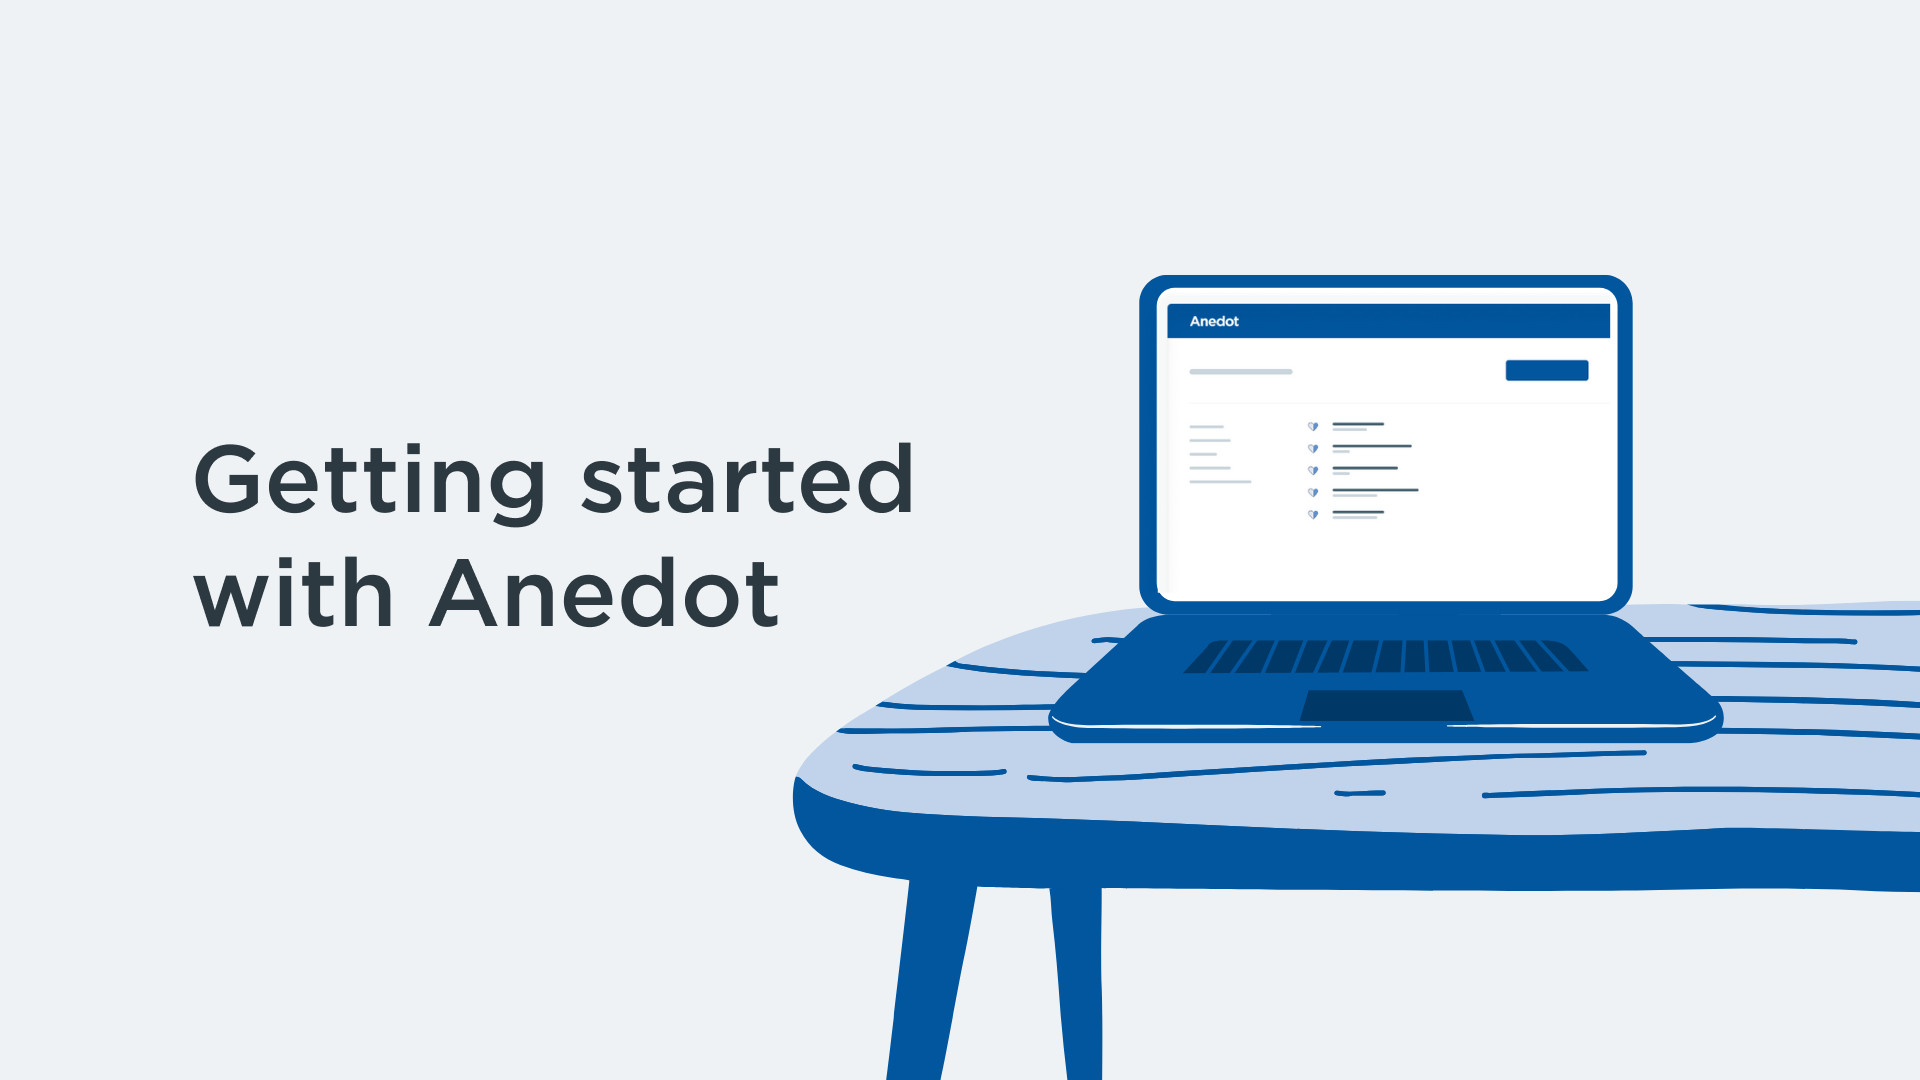 Getting started with Anedot course